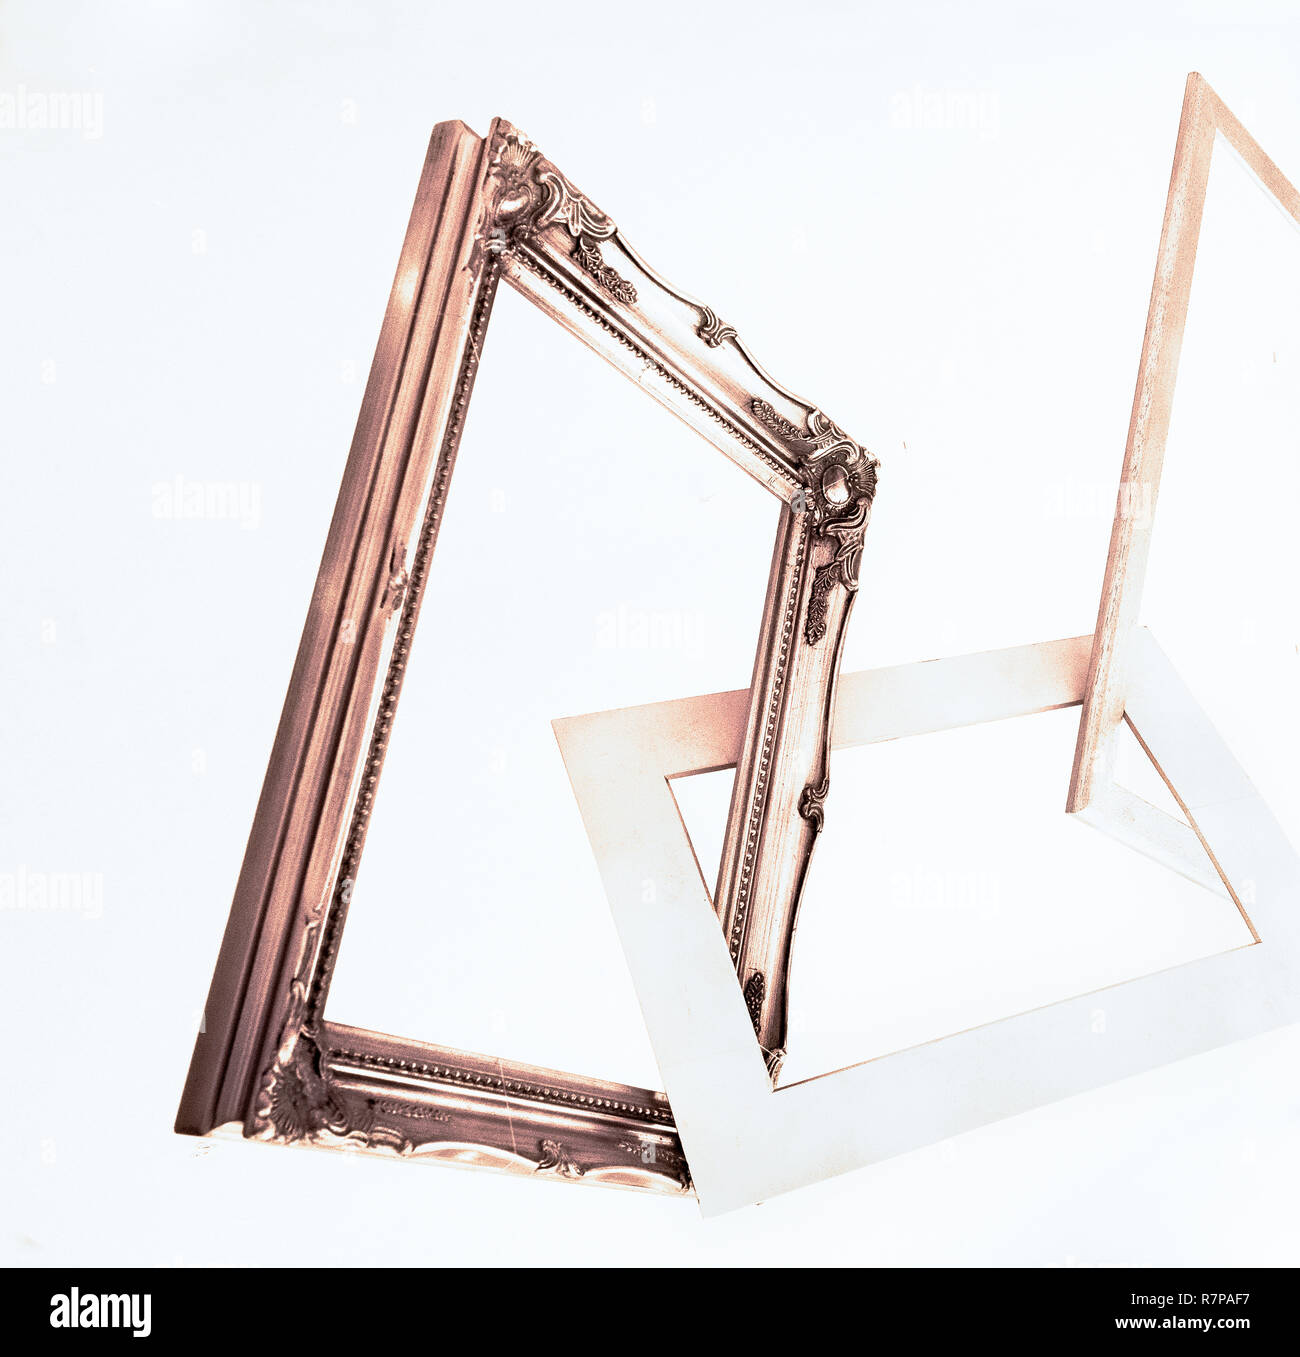 Interlinked picture frames. - Stock Image